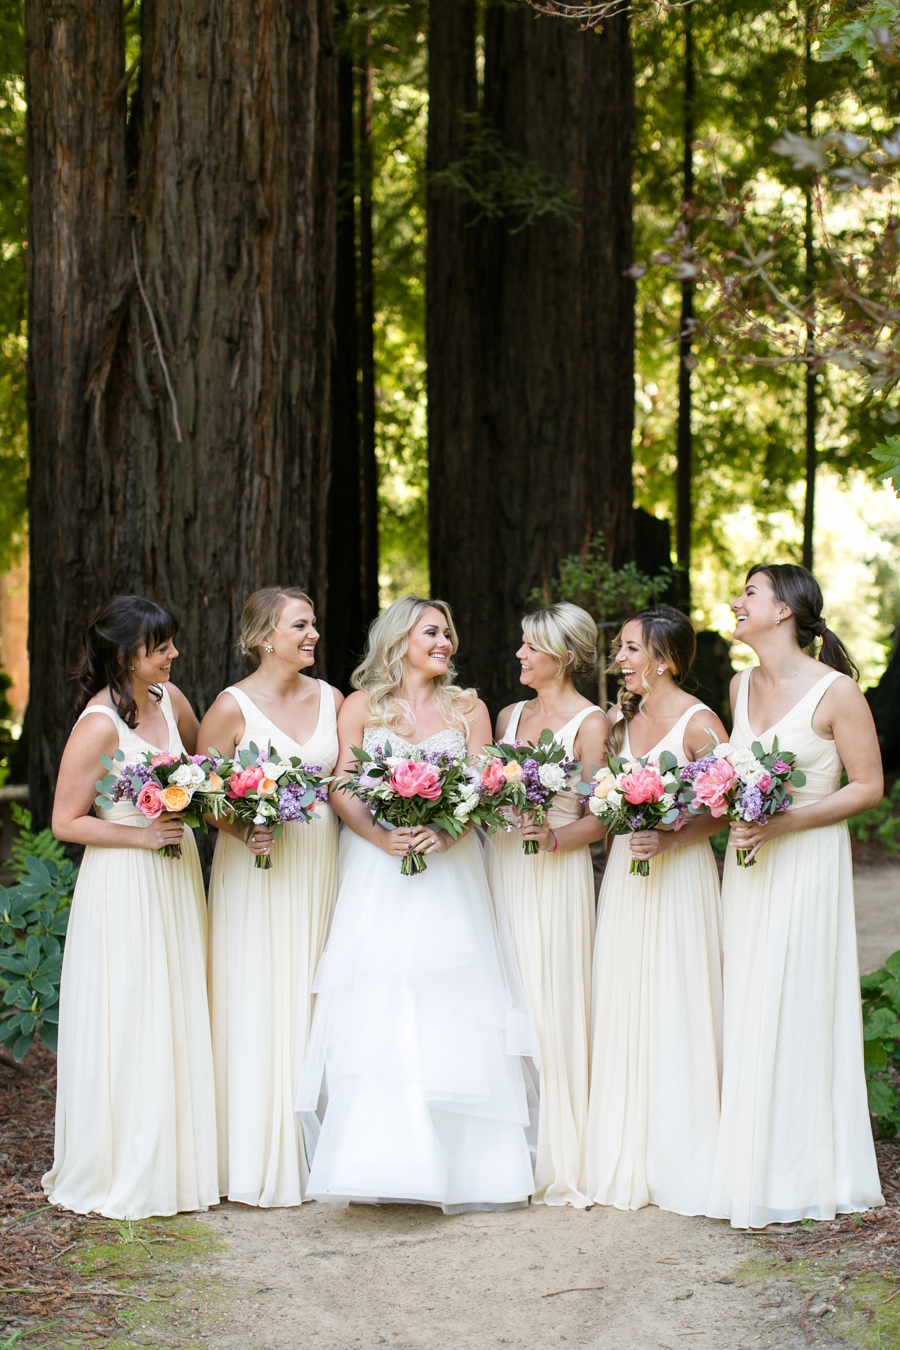 Colorful whimsical garden wedding elizabeth anne designs the colorful whimsical garden wedding elizabeth anne designs the wedding blog ombrellifo Image collections